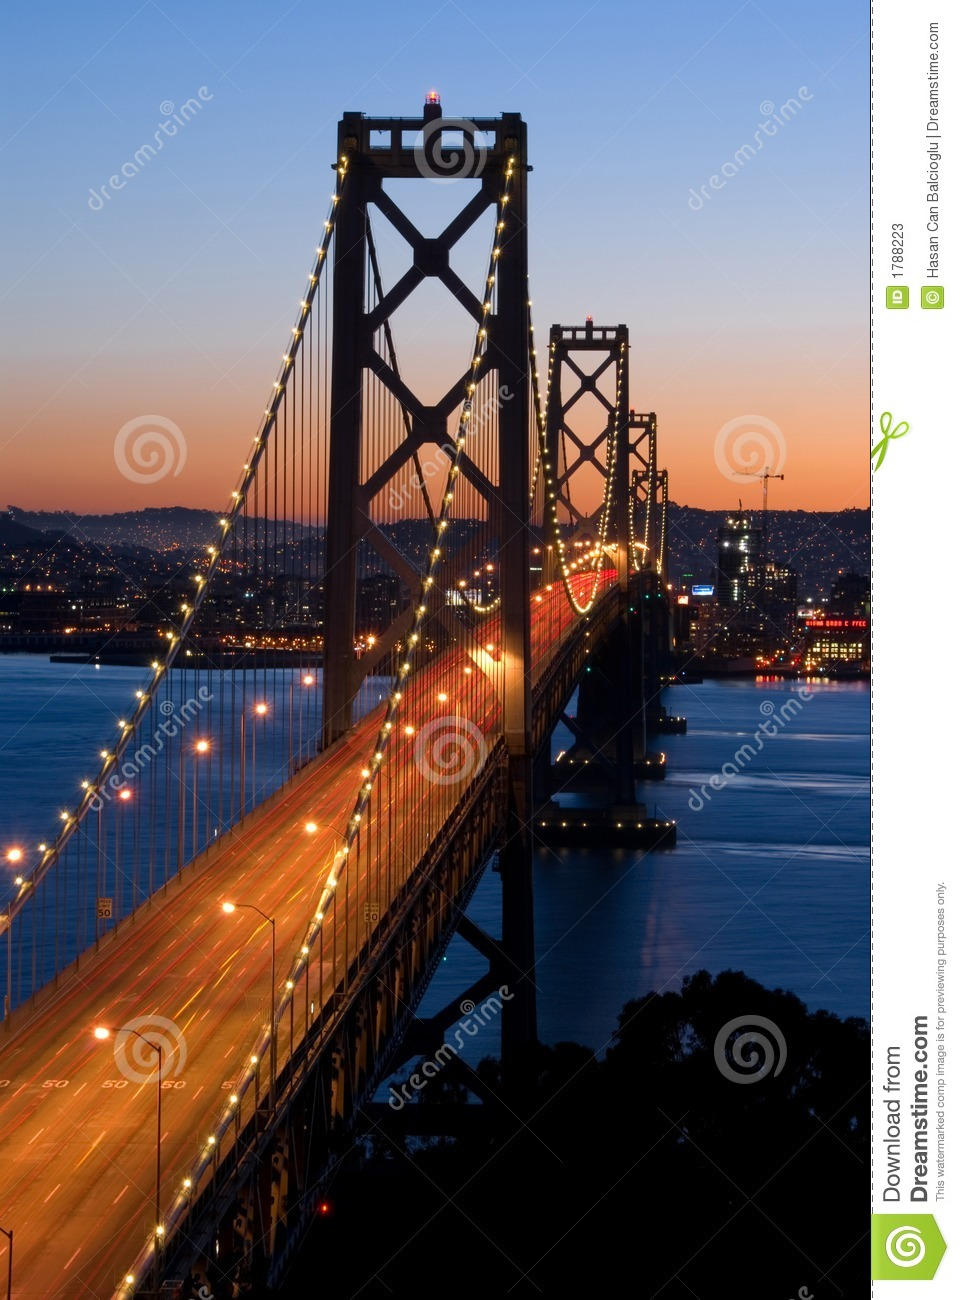 Ponte do louro, San Francisco no por do sol